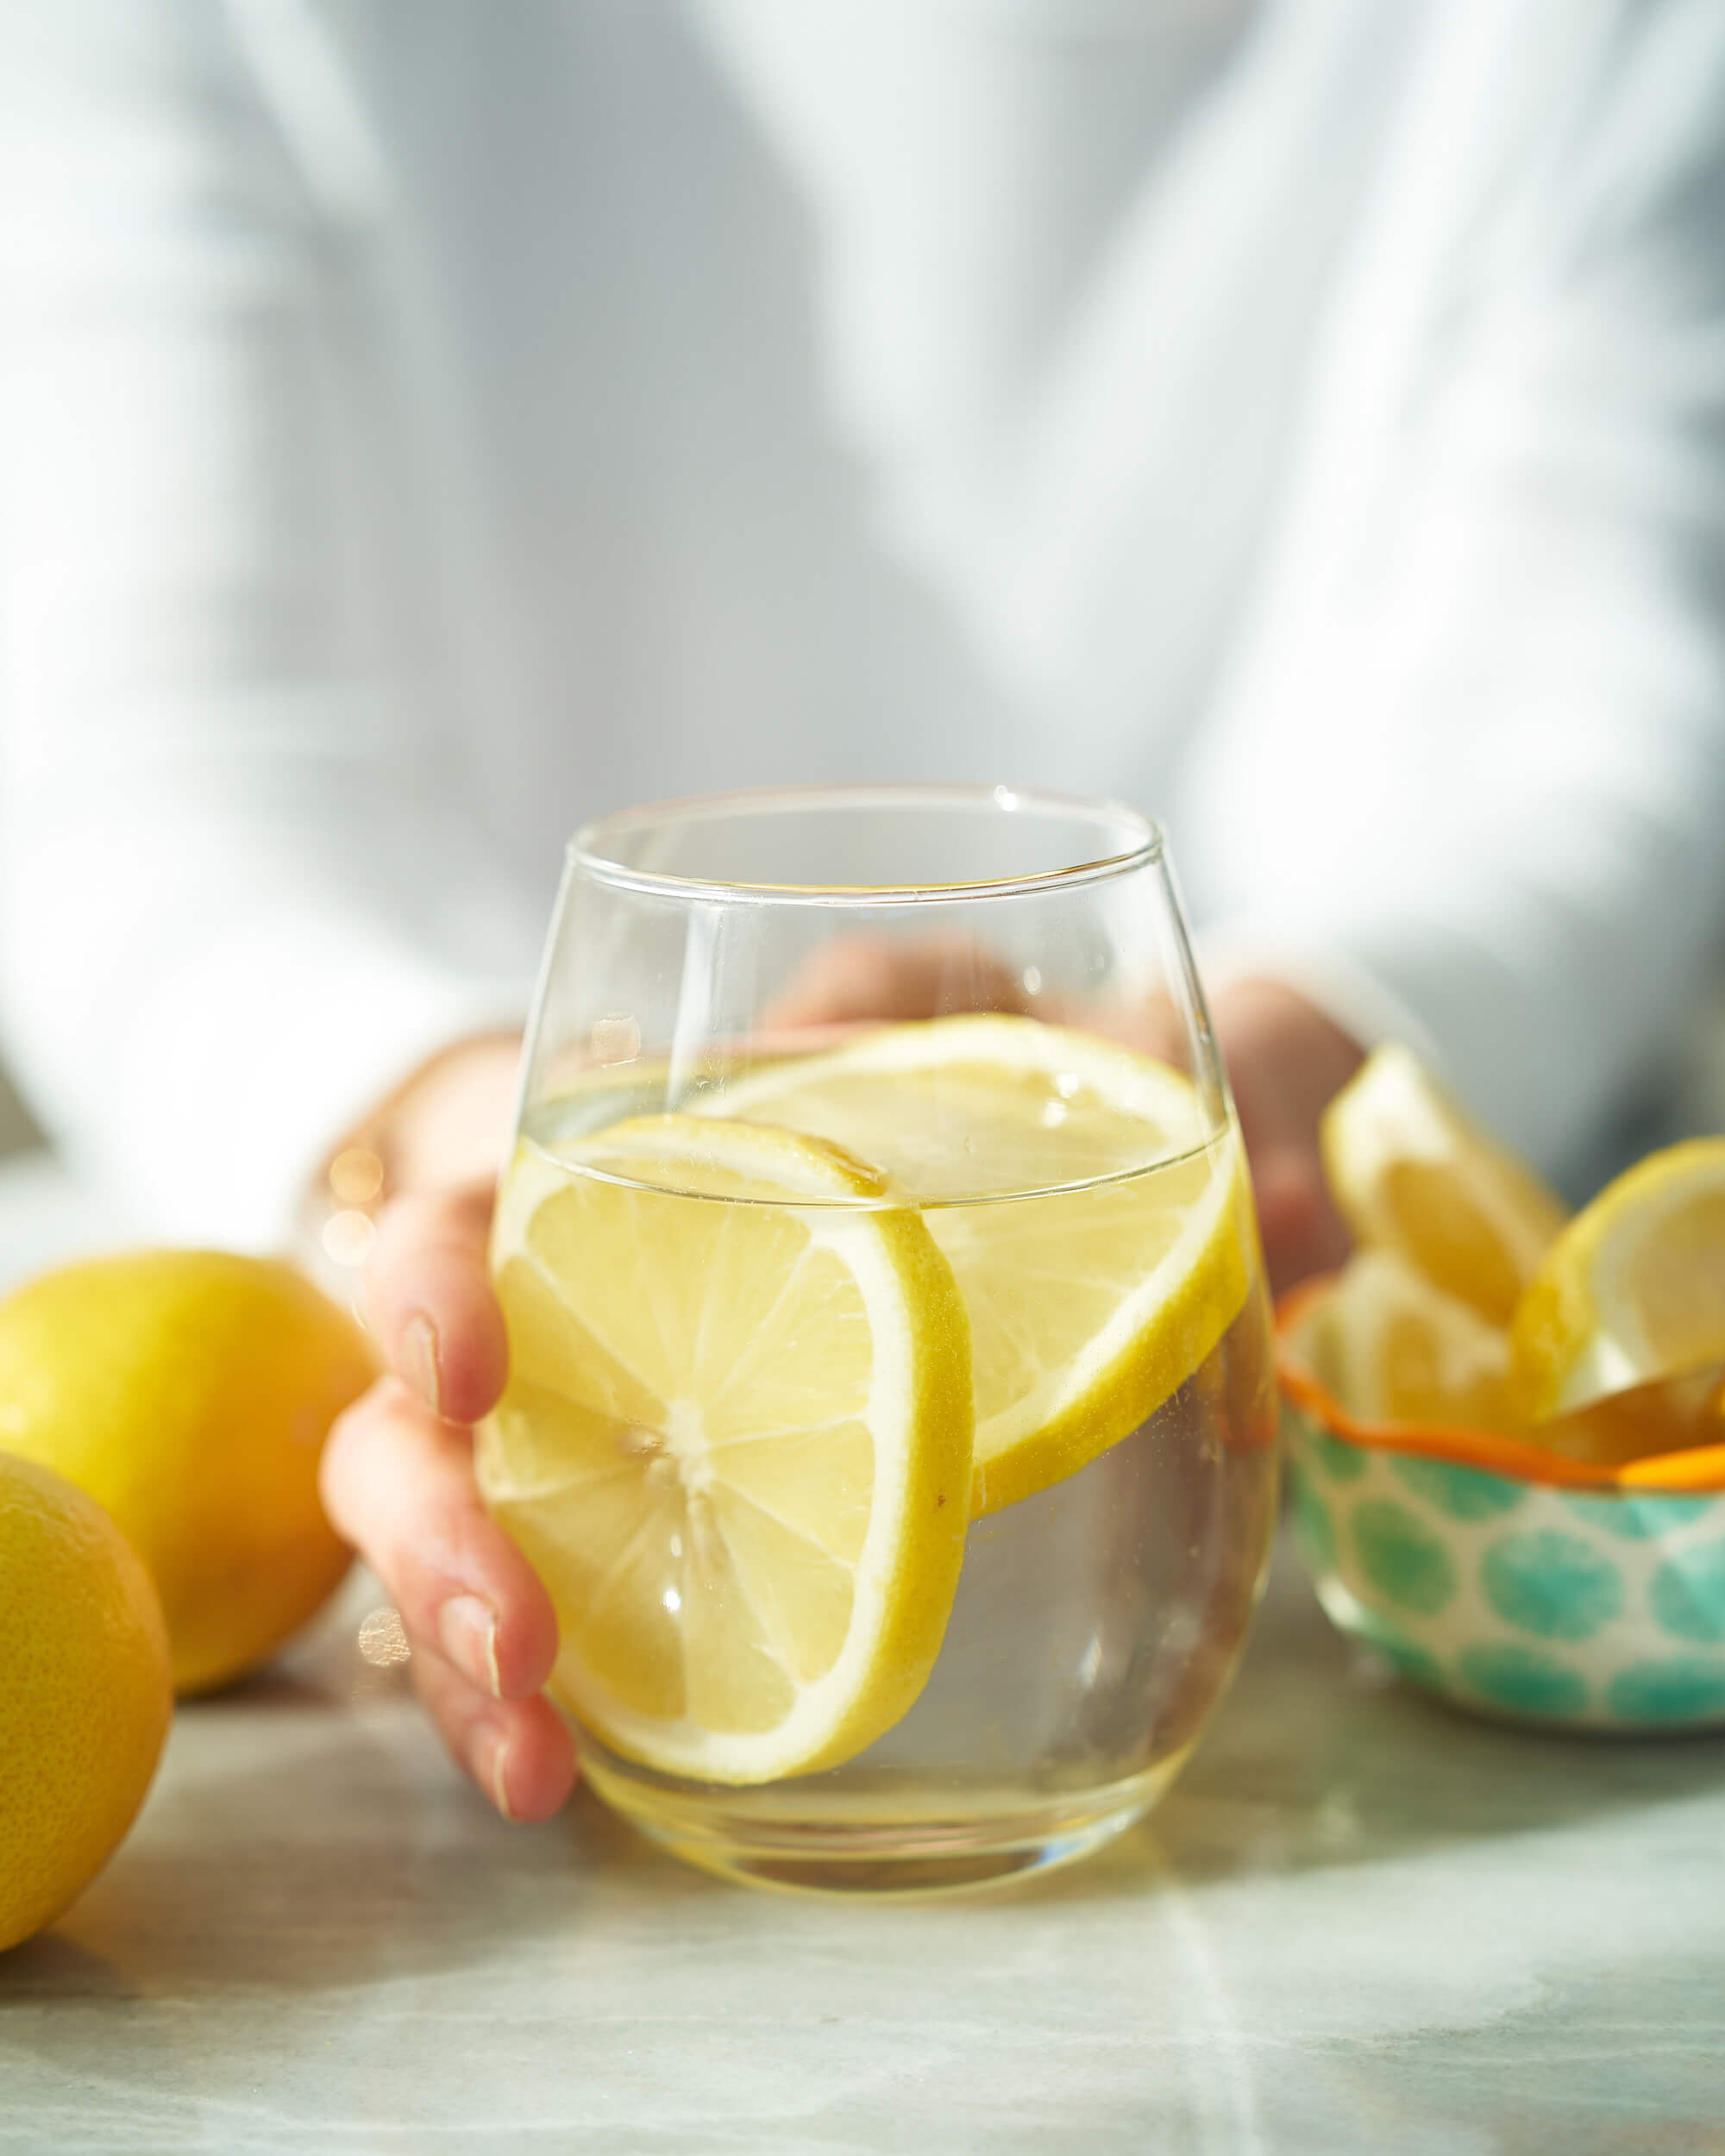 Lemon and water in a glass